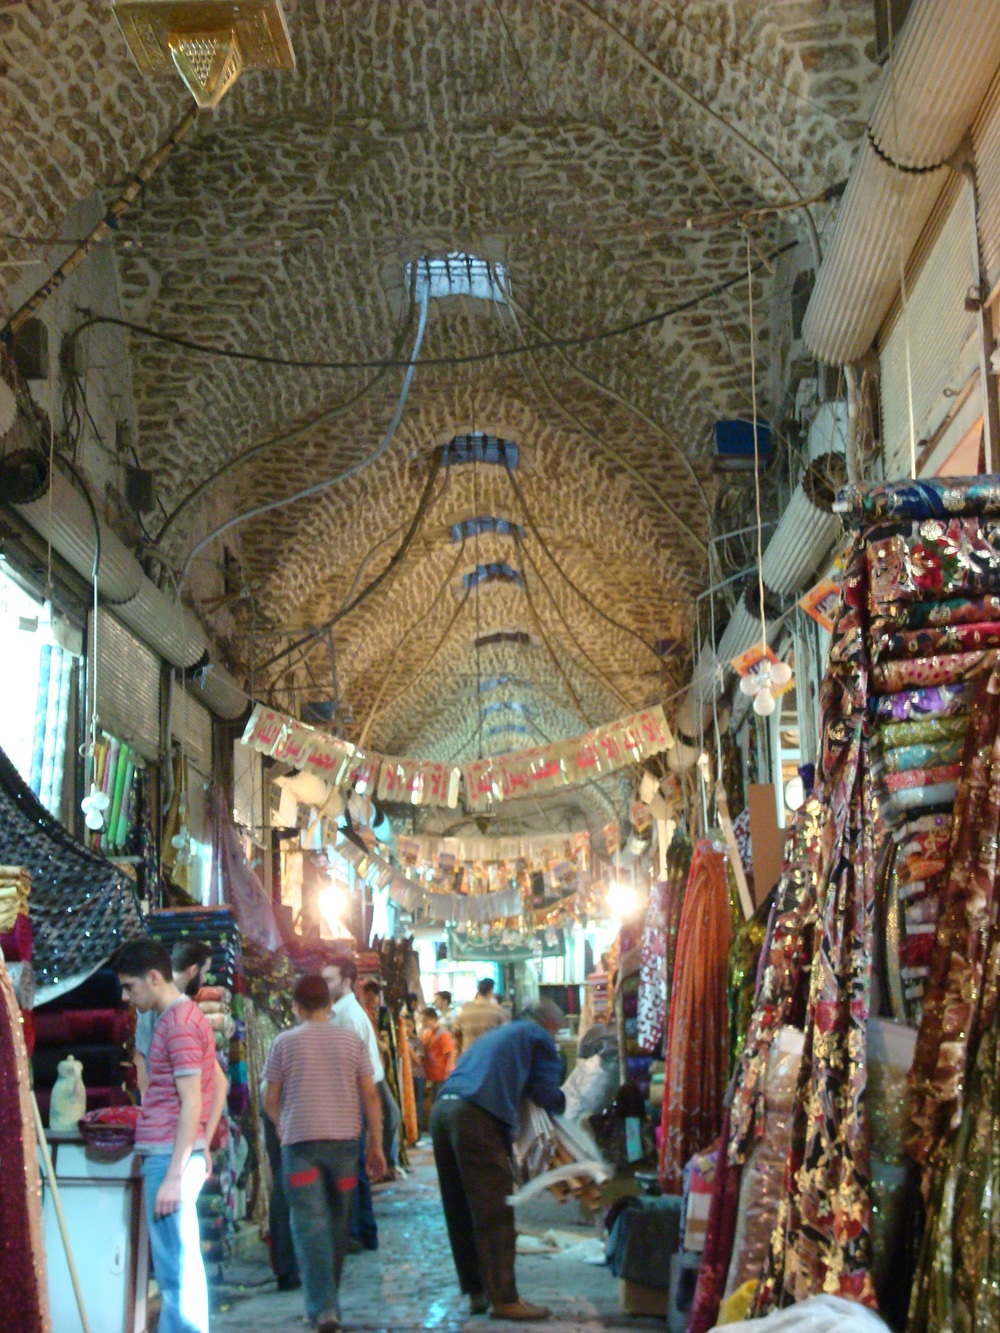 The medieval sooks of Aleppo where Armenian artisans were a presence